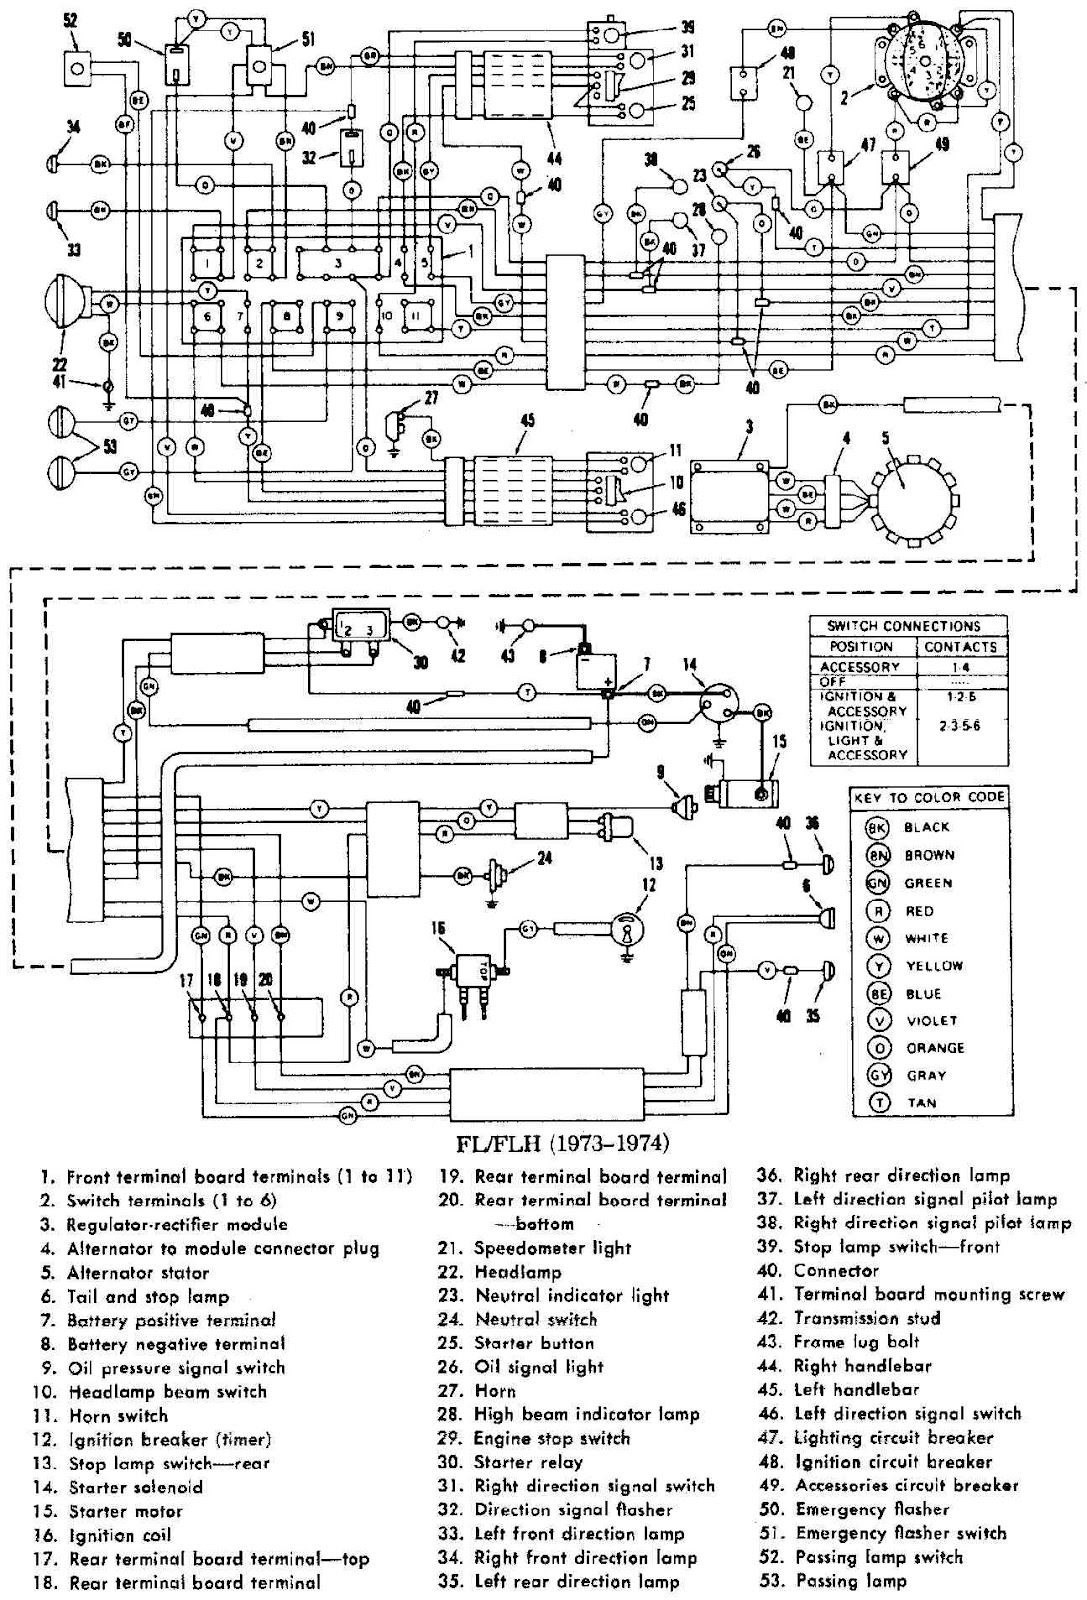 harley davidson engine wiring diagram 17 18 kenmo lp de \u2022